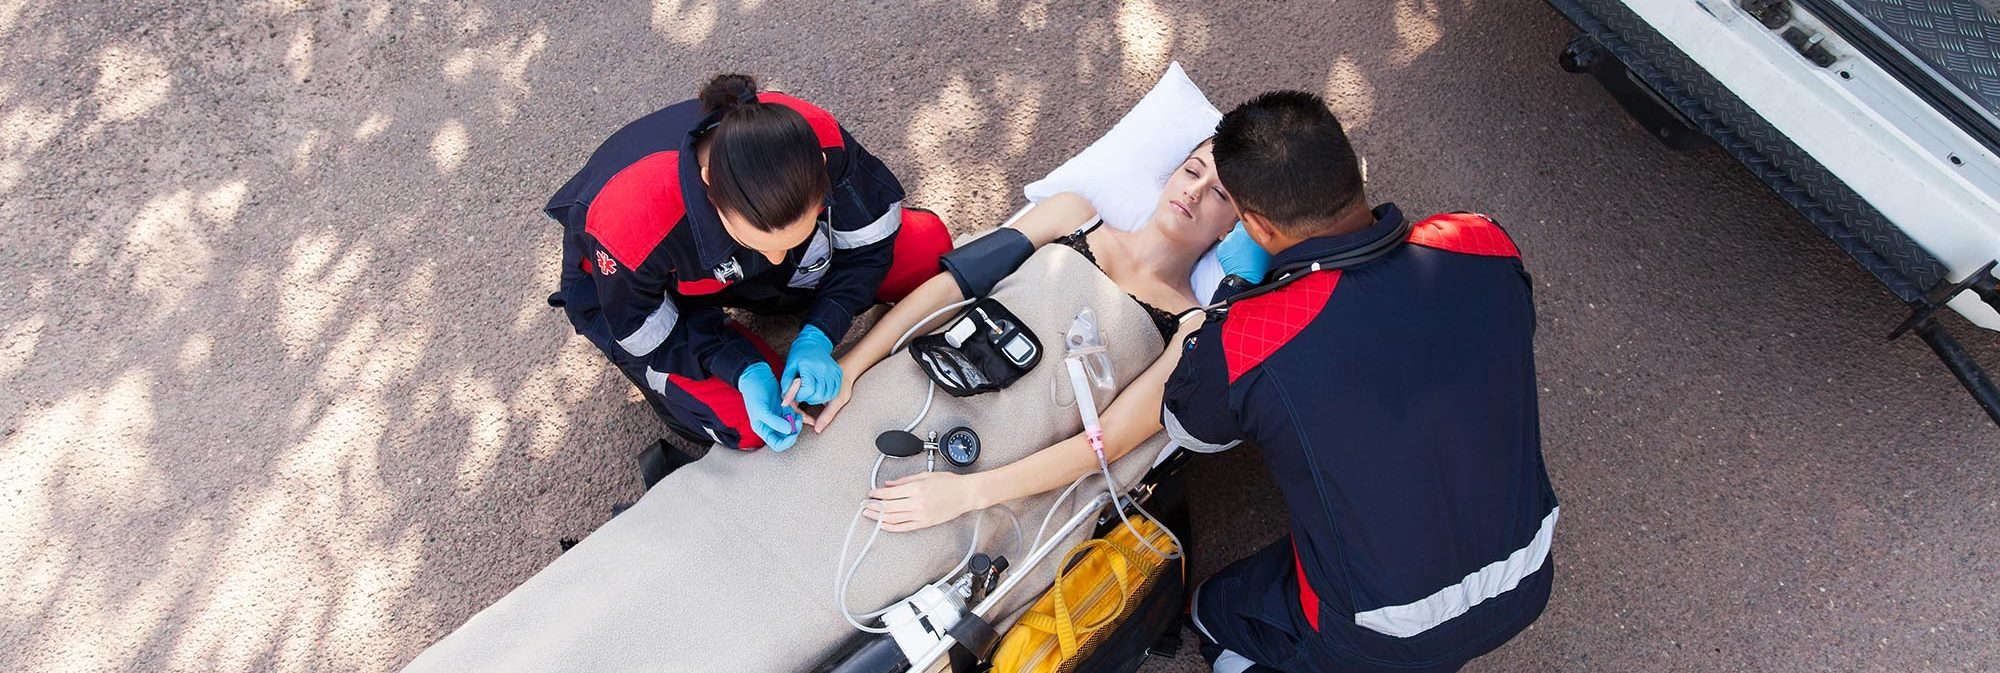 EMTs working on a female patient